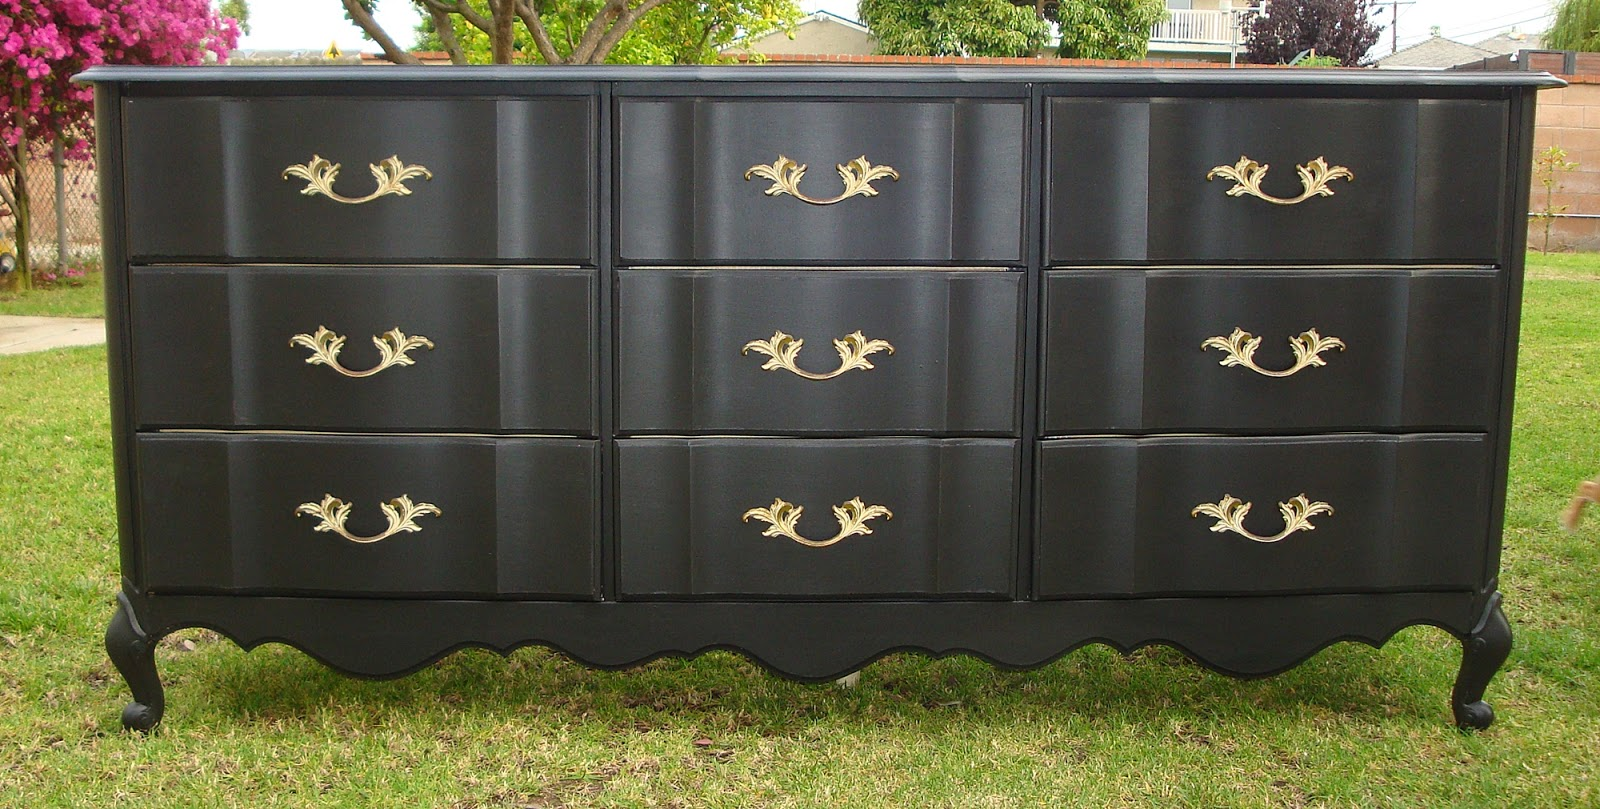 #4E5D24 SHABBY CHIC/FRENCH PROVINCIAL 9 DRAWER DRESSER COTTAGE BLACK #7001 with 1600x809 px of Brand New 9 Drawer Dresser Black 8091600 pic @ avoidforclosure.info